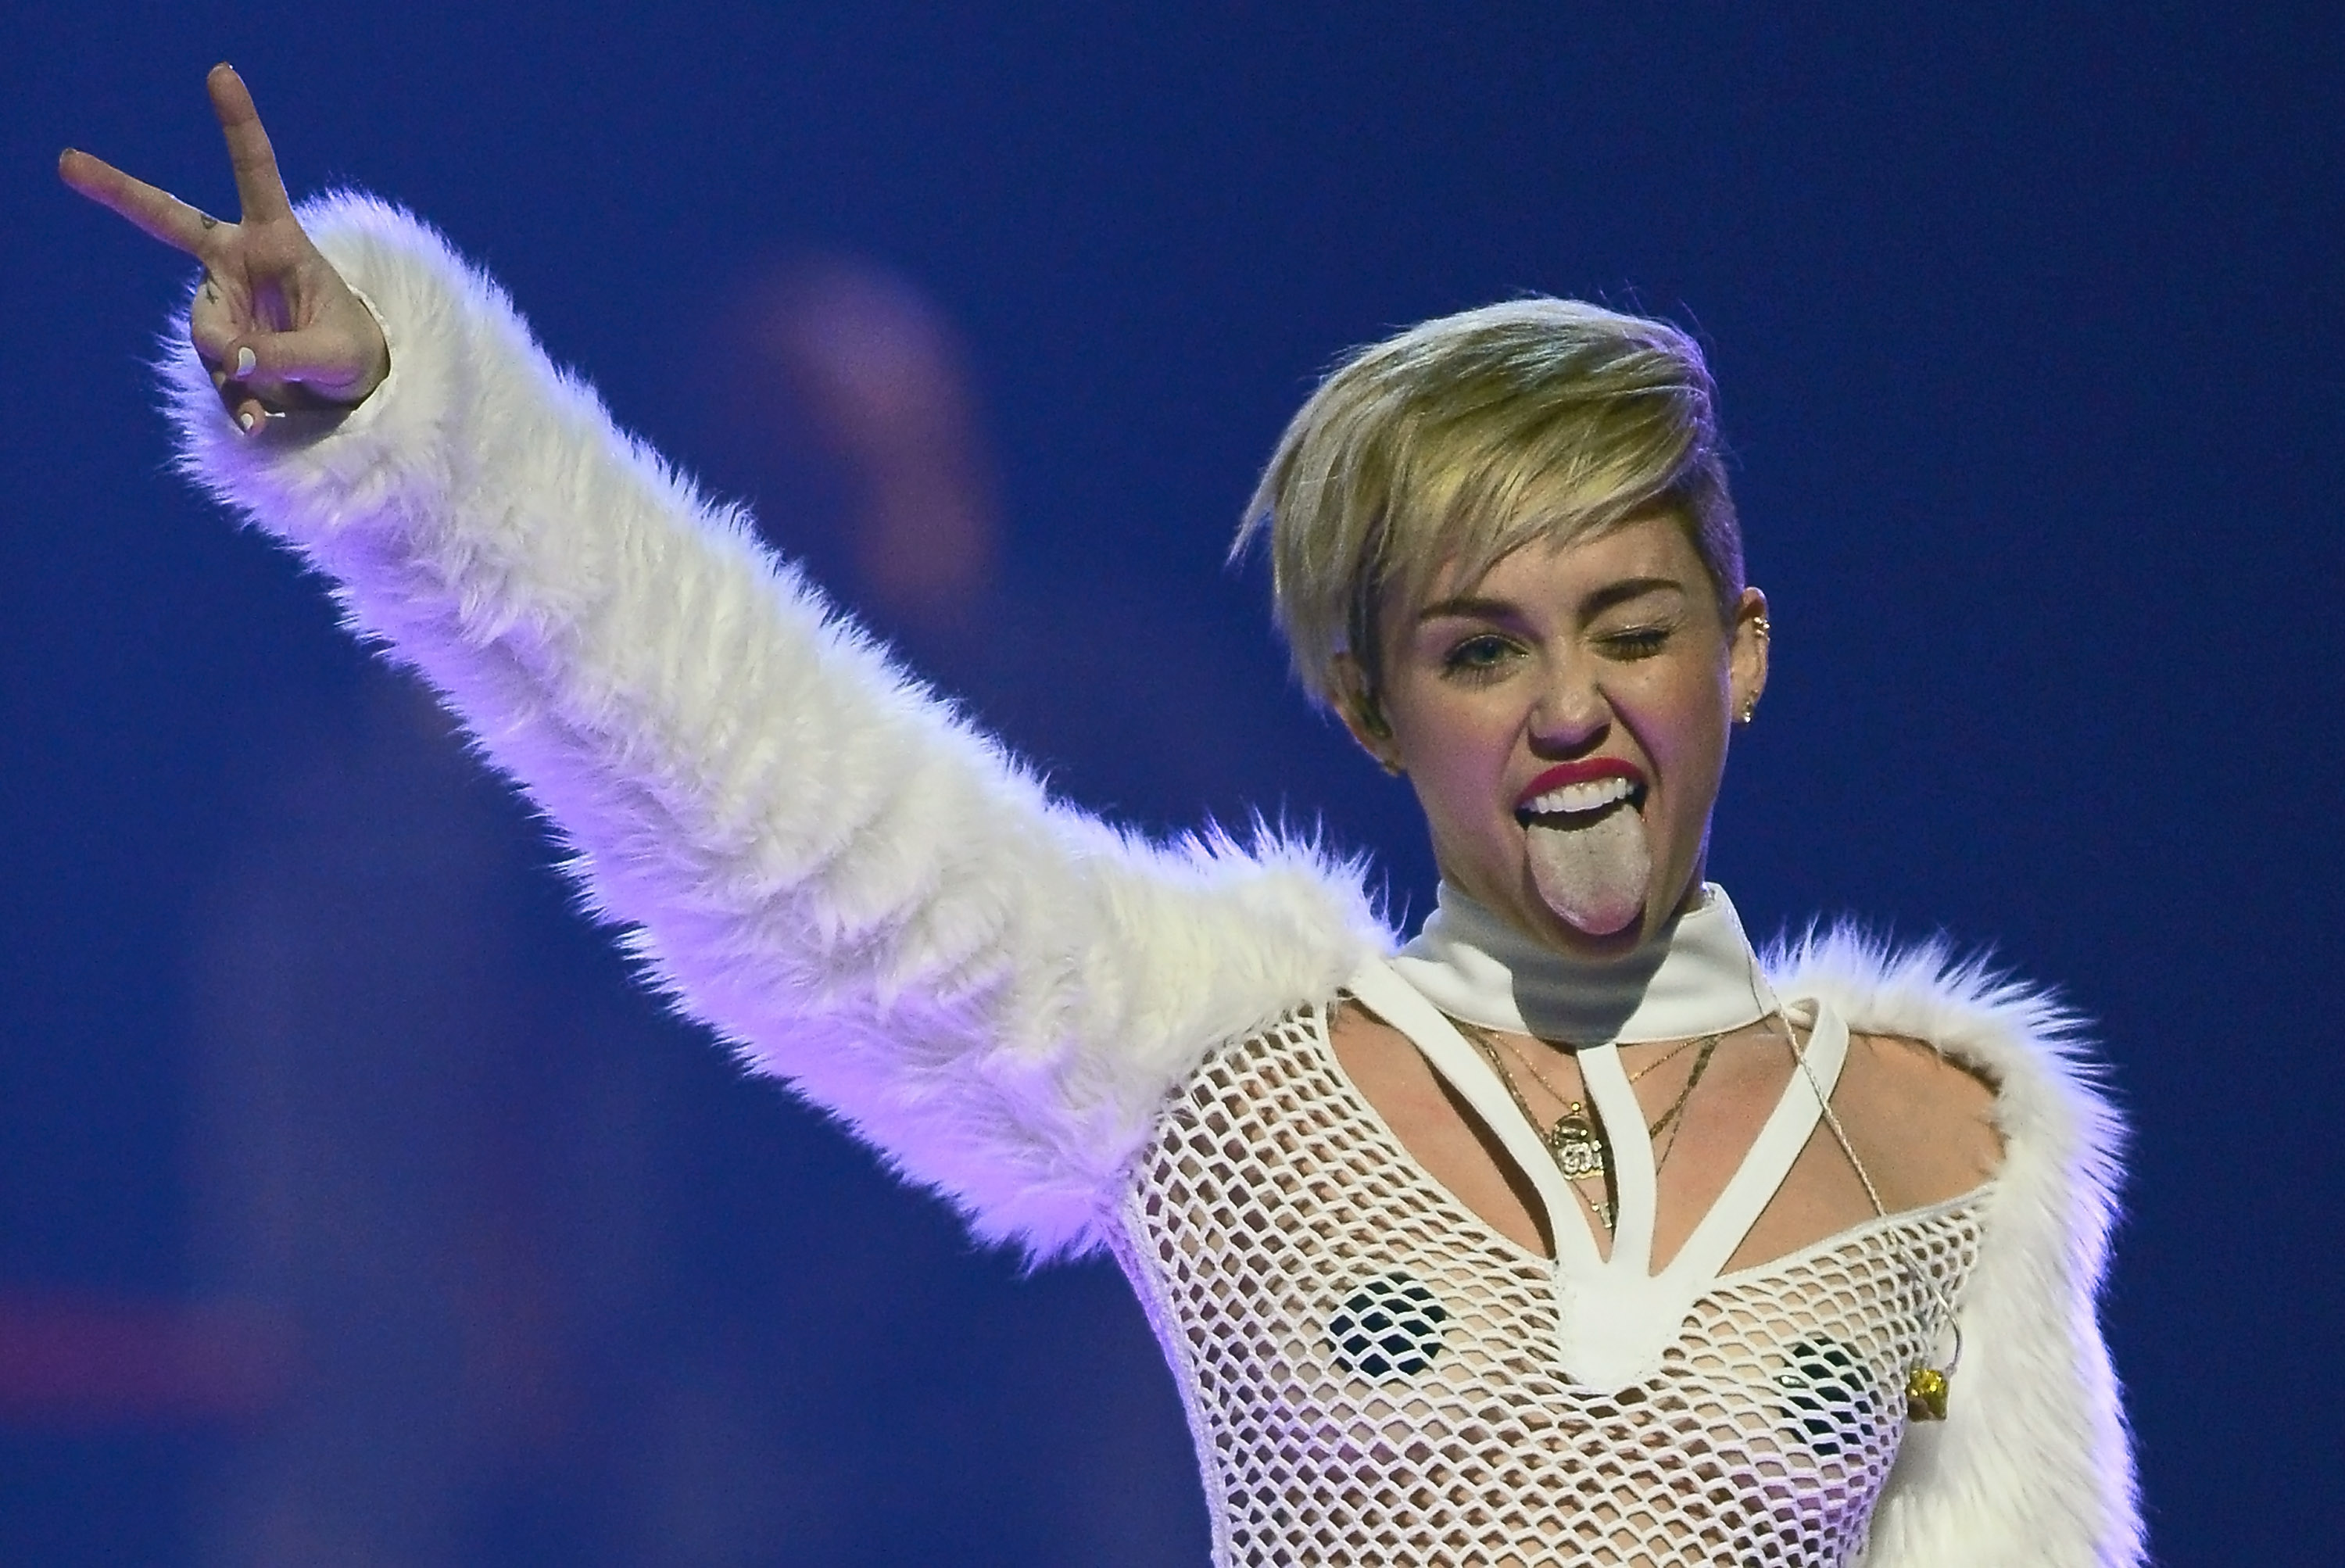 LAS VEGAS, NV - SEPTEMBER 21:  Entertainer Miley Cyrus winks and sticks out her tongue as she performs during the iHeartRadio Music Festival at the MGM Grand Garden Arena on September 21, 2013 in Las Vegas, Nevada.  (Photo by Ethan Miller/Getty Images for Clear Channel)